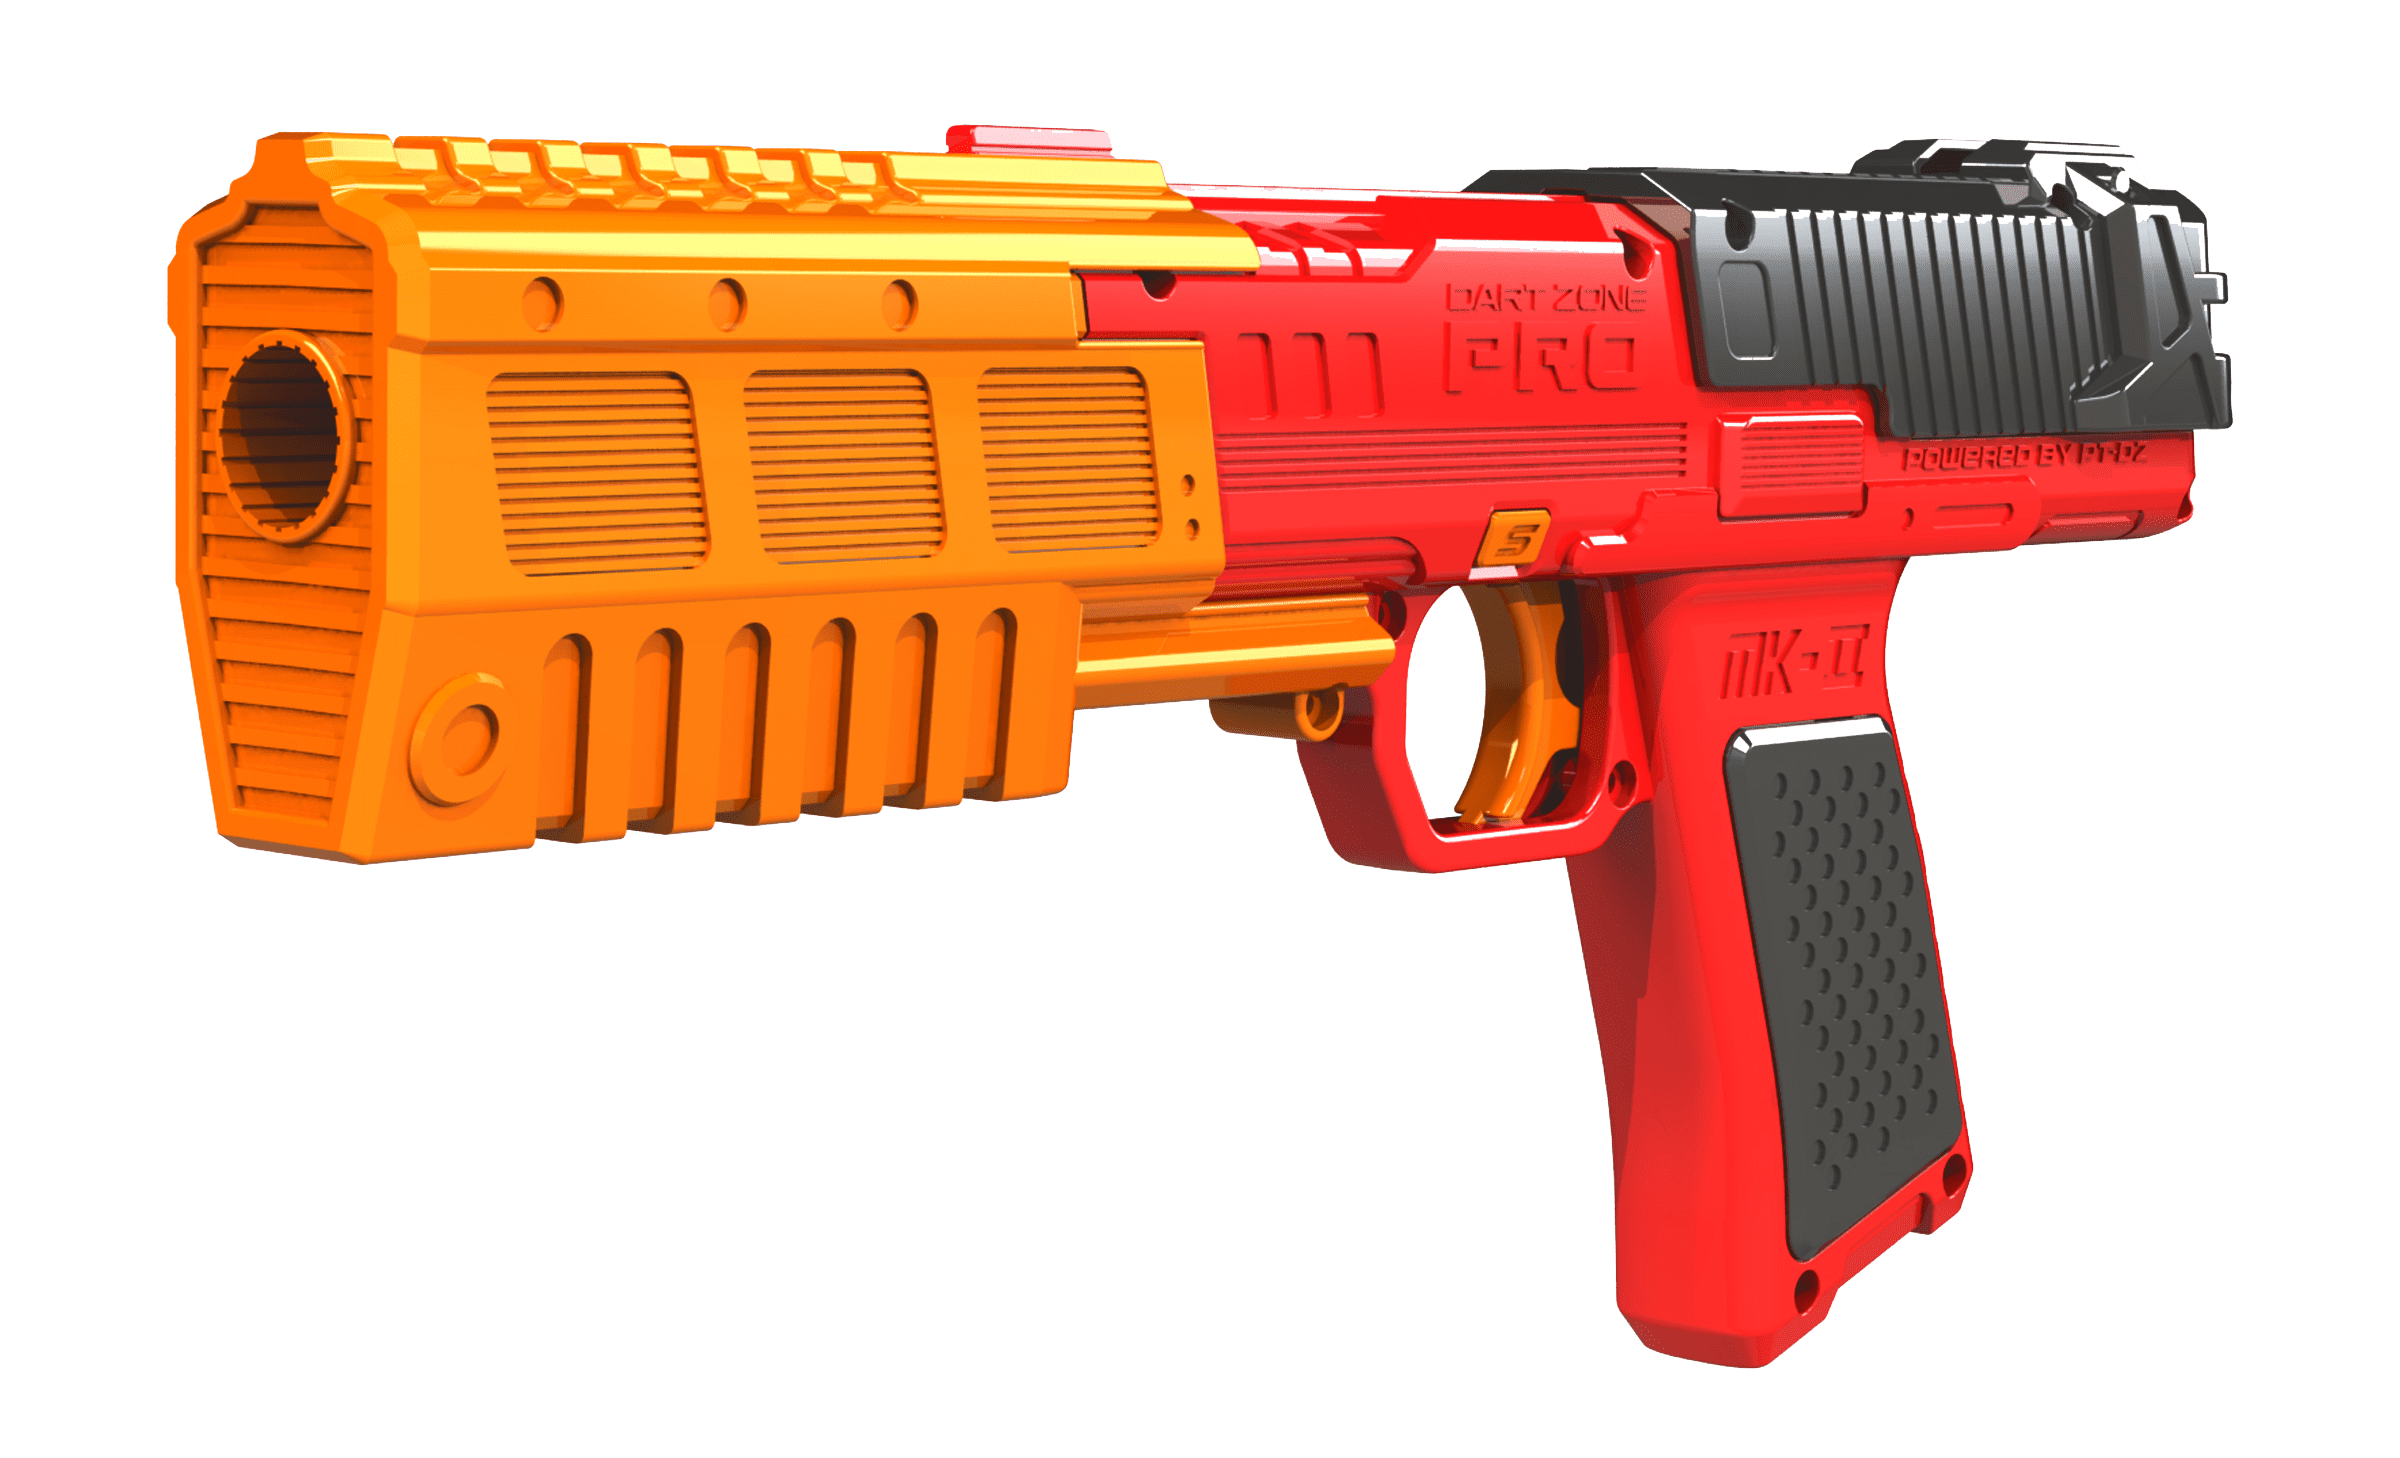 Left Side View of the Pro Series MK-2 High Power Toy Foam Dart Blaster